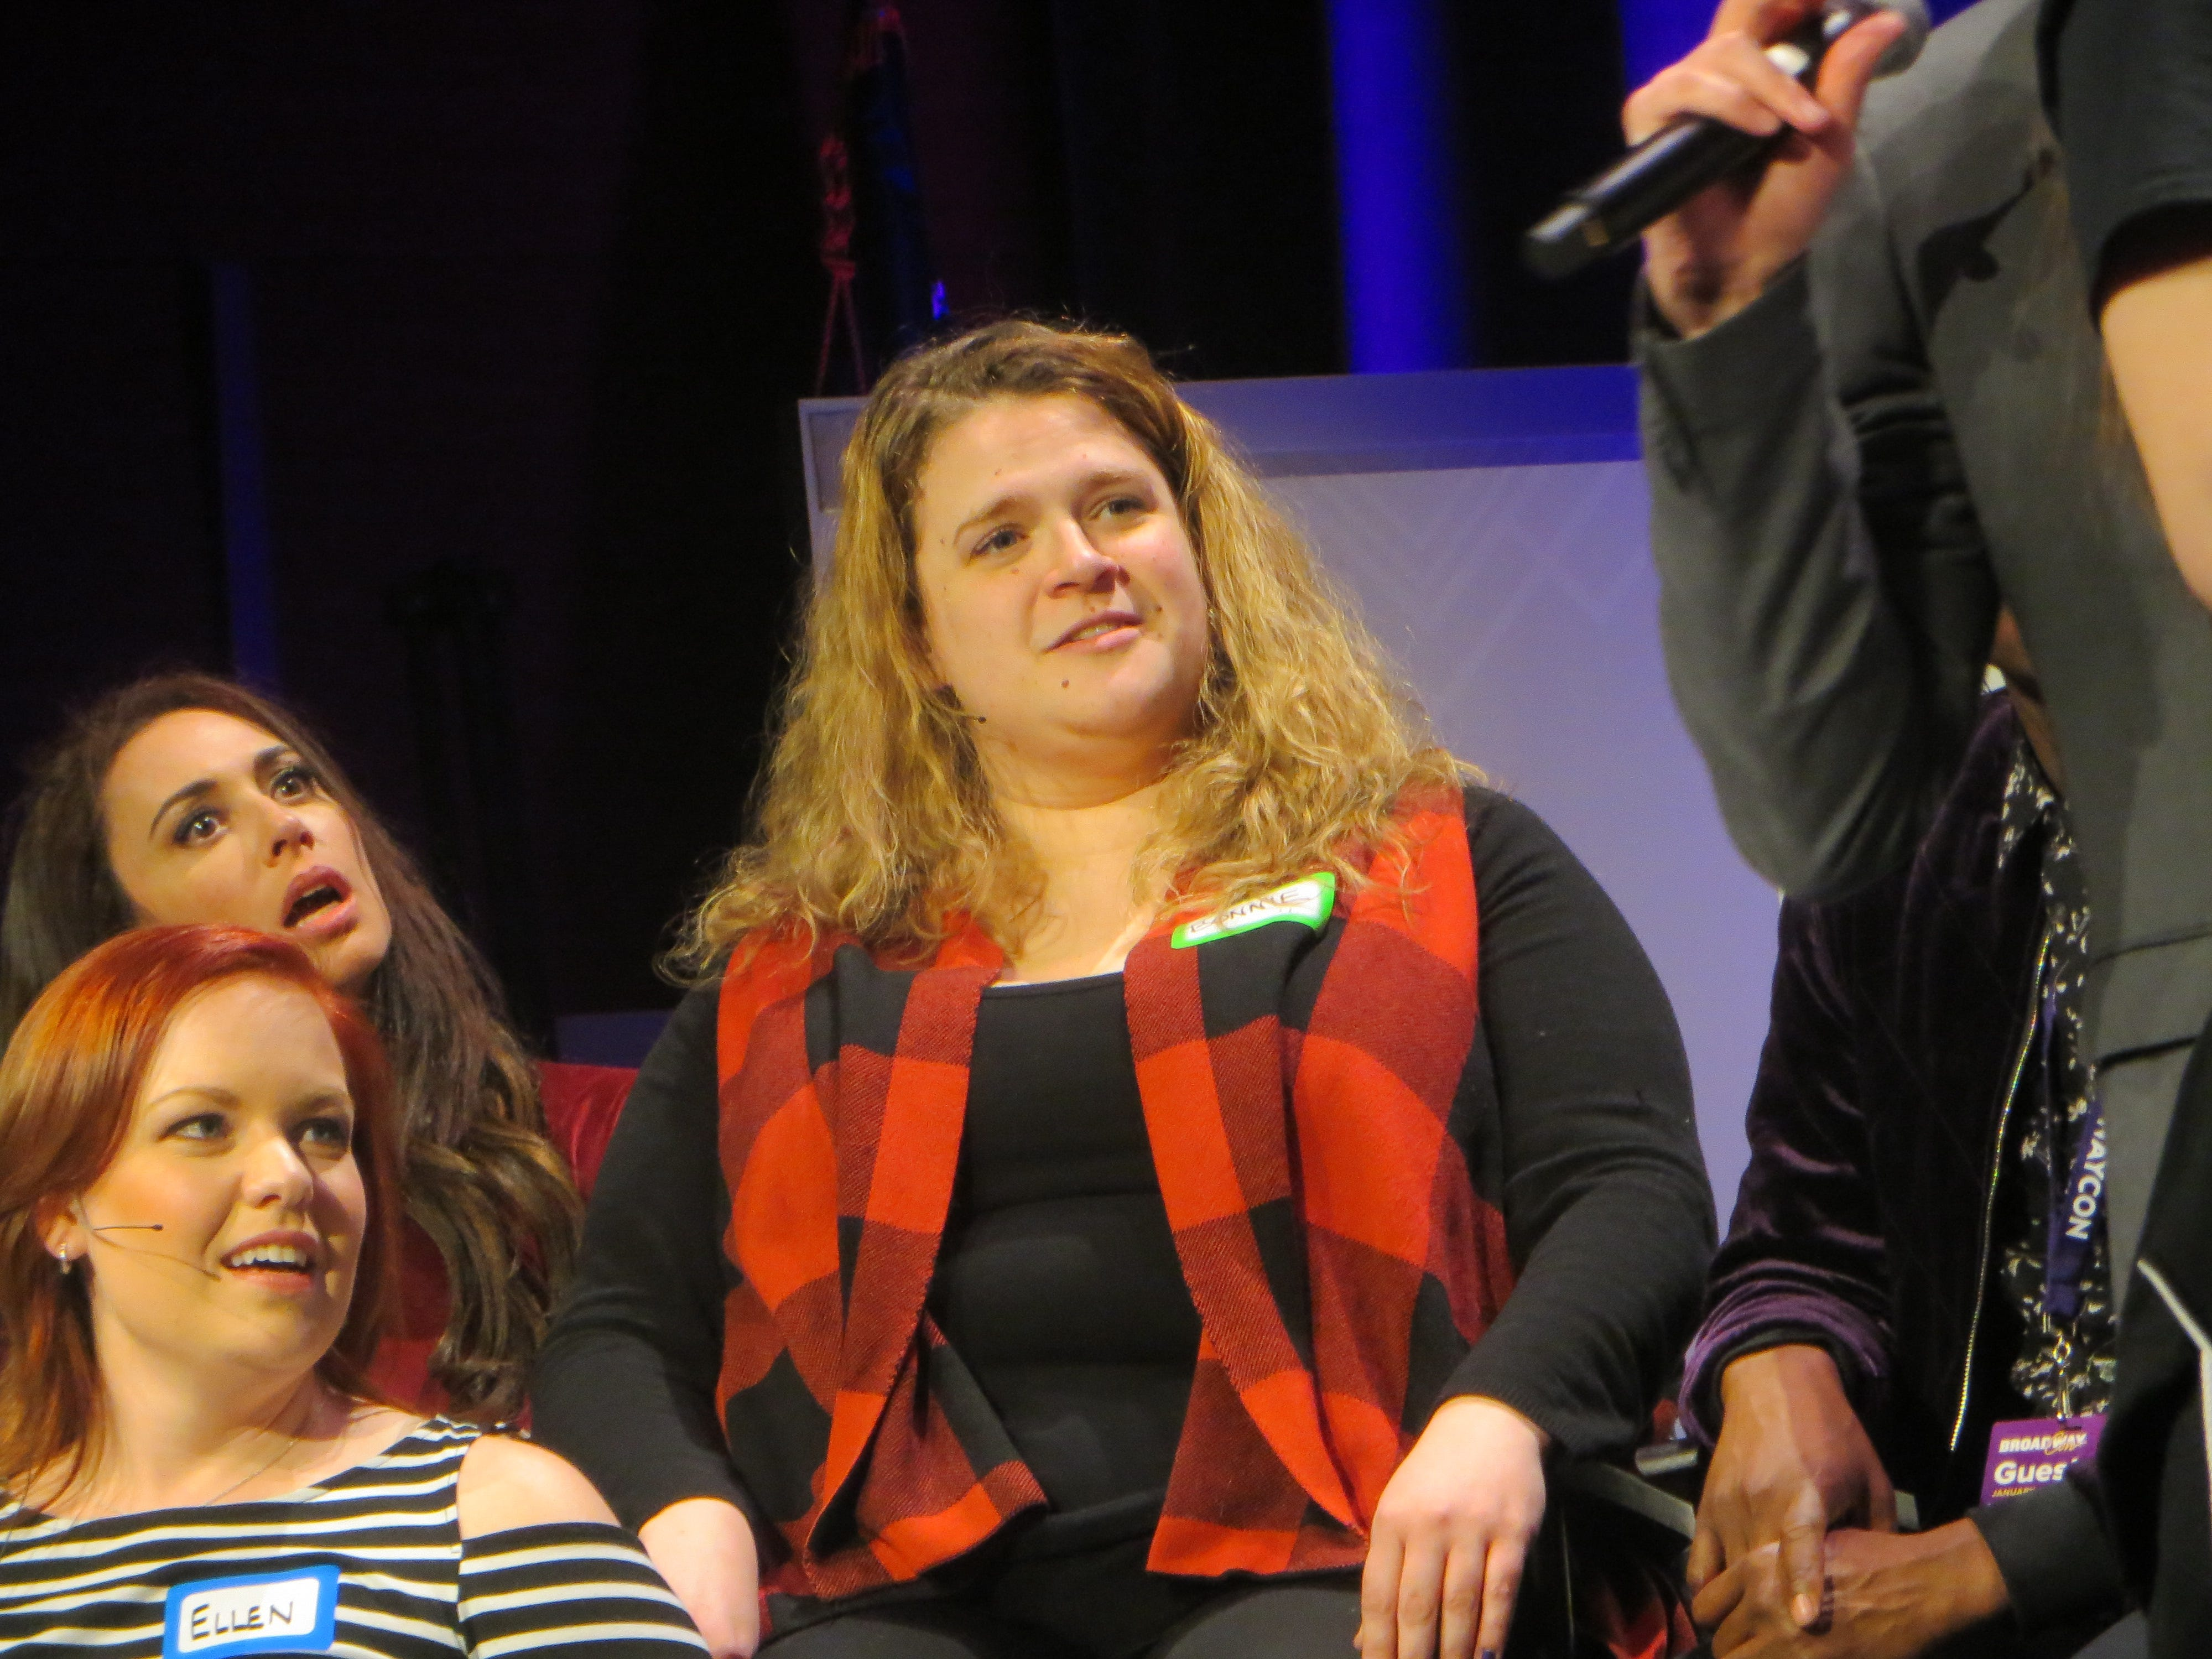 Bonnie Milligan takes part in Game Night at BroadwayCon 2019, held Jan. 11 to 13, 2019, at the New York Hilton Midtown in Manhattan.